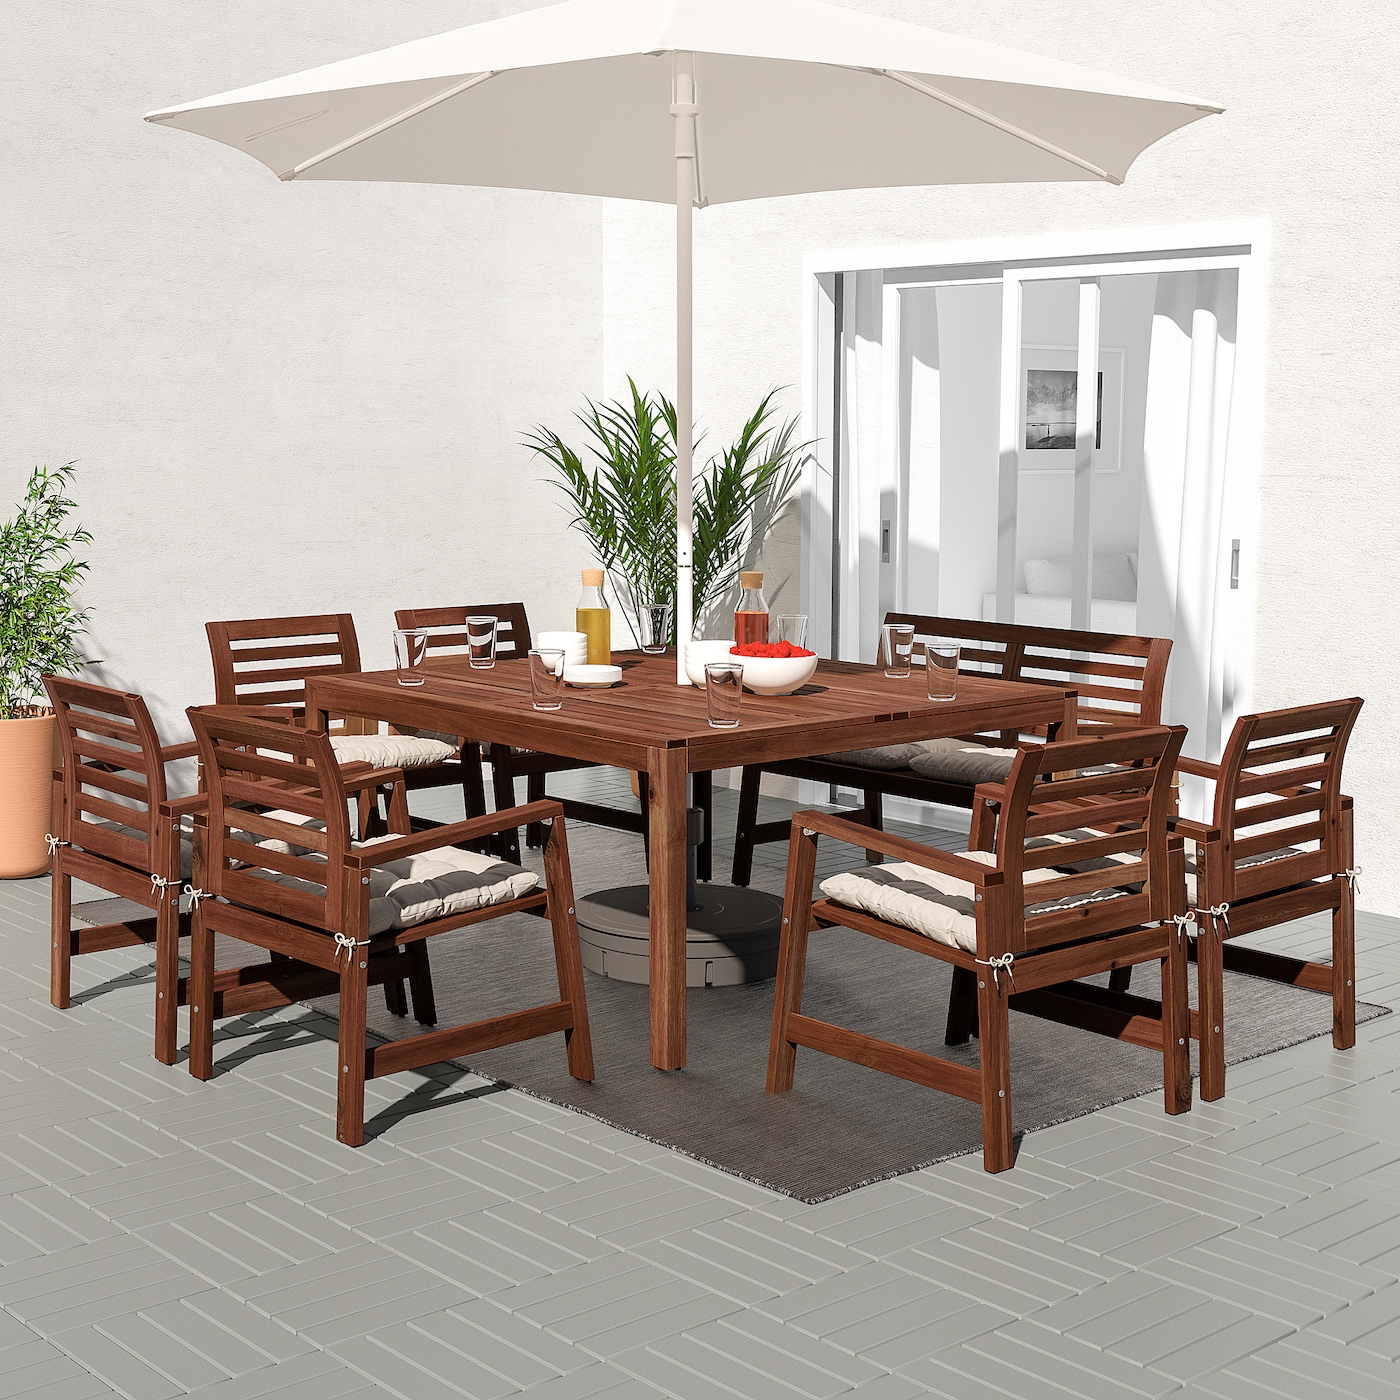 ÄPPLARÖ Table, outdoor, brown stained, 140x140 cm